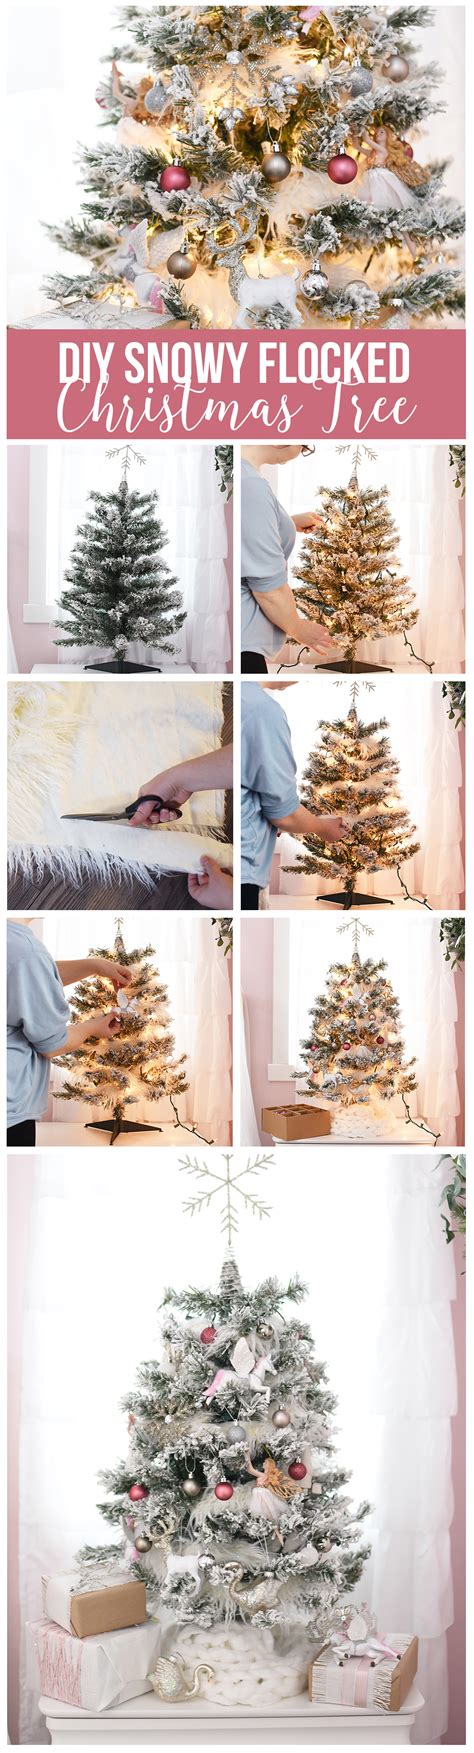 decorating a white flocked tree how to decorate a white flocked tree the diy